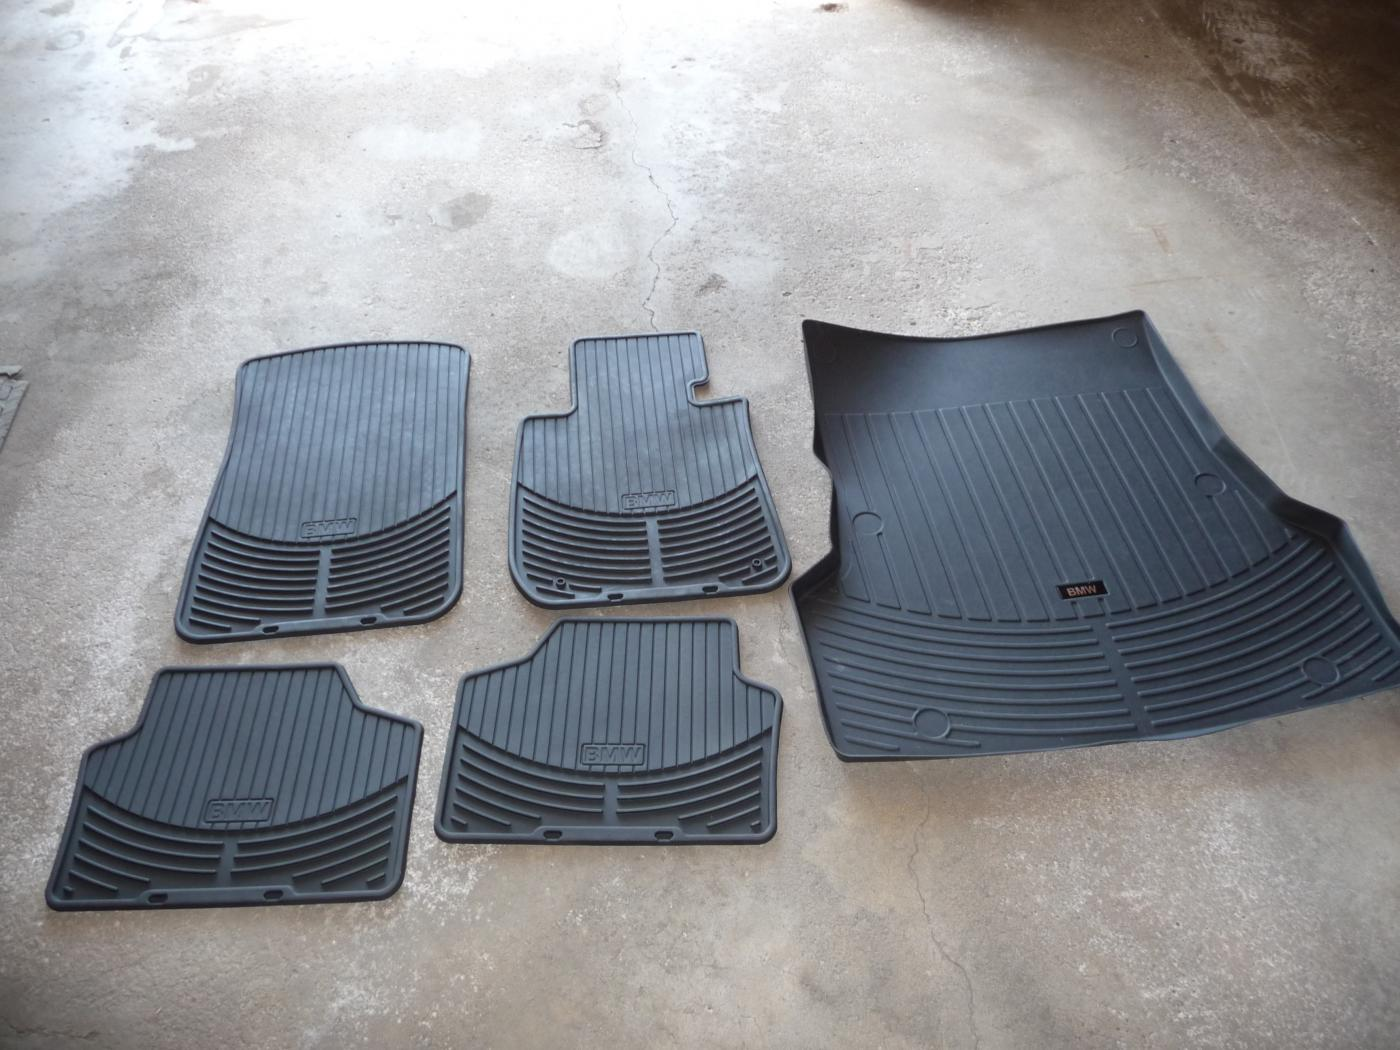 Bmw floor mats x1 - Attached Images